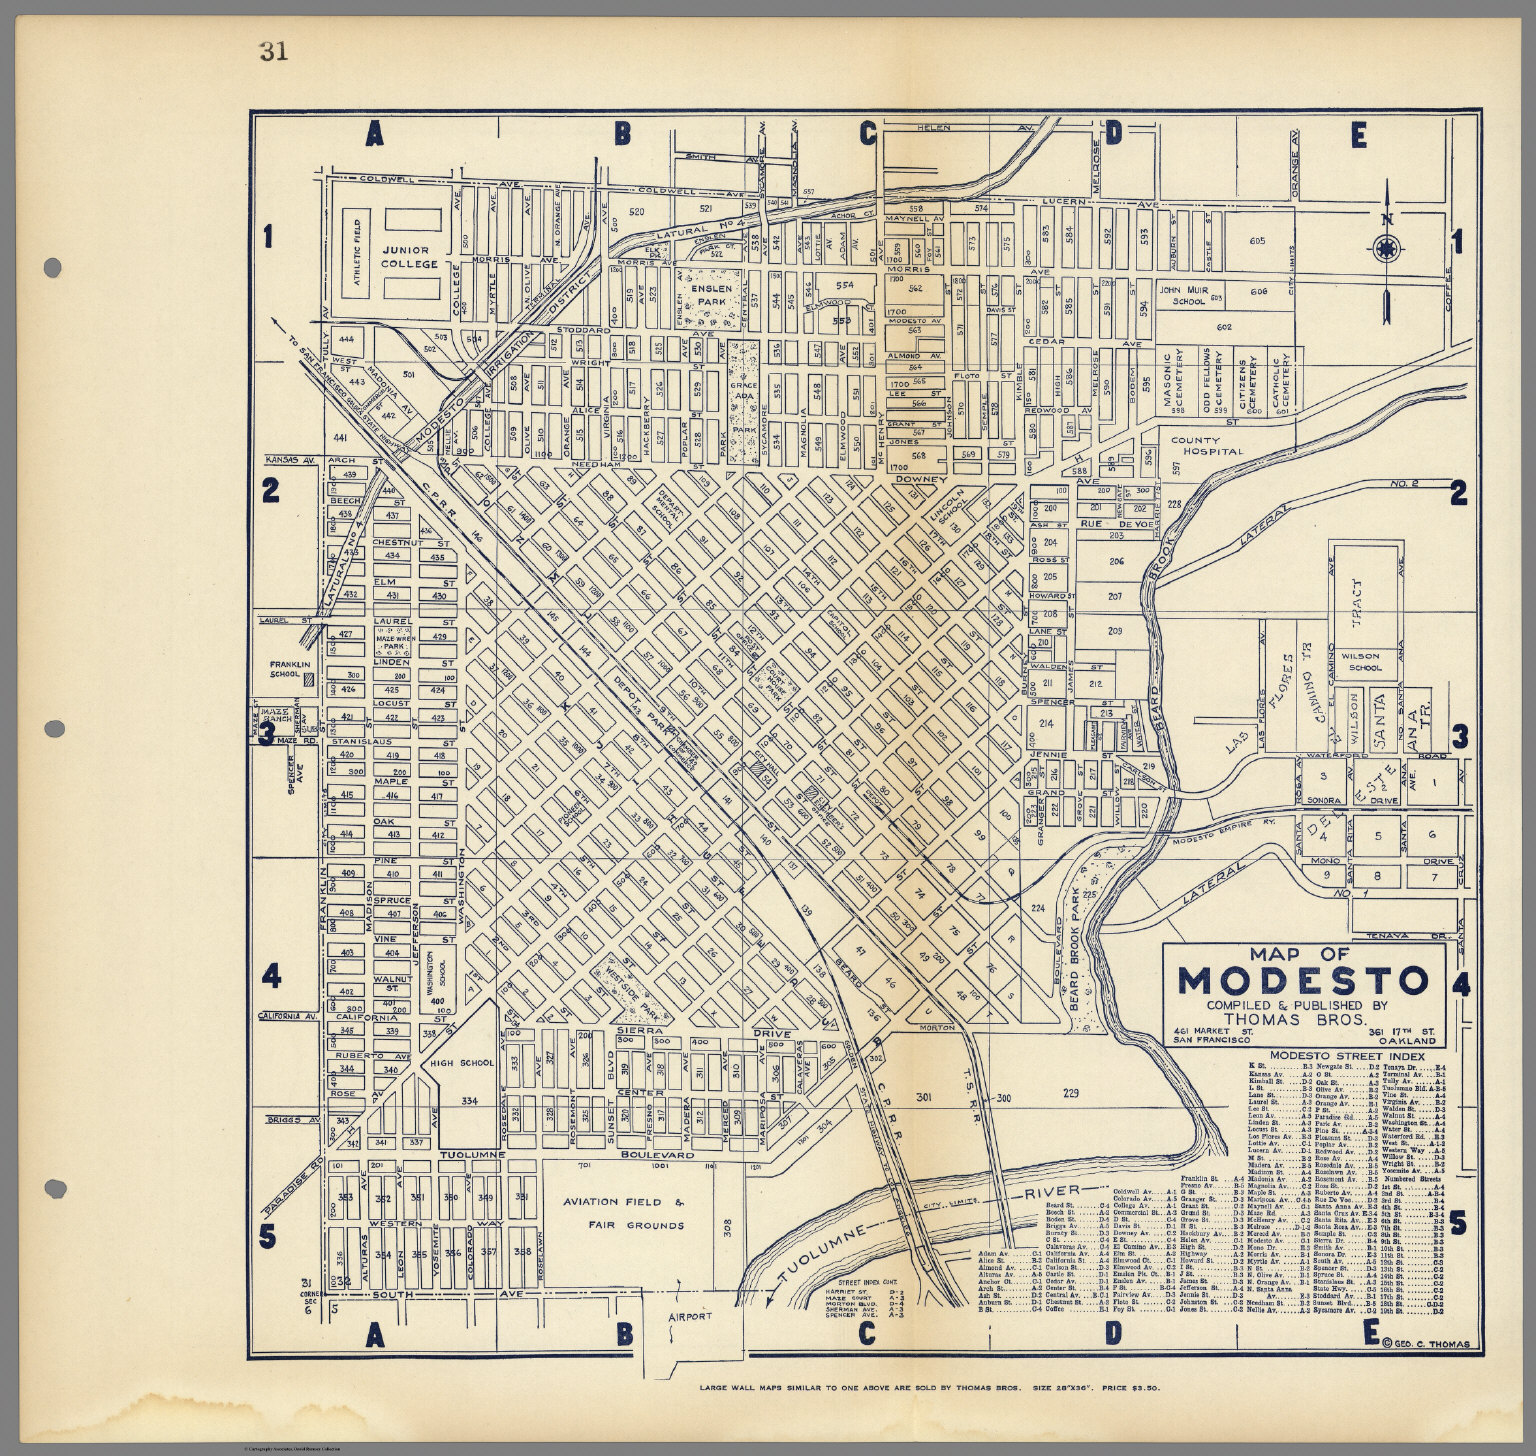 Map of Modesto, California, Compiled & Published by Thomas Bros